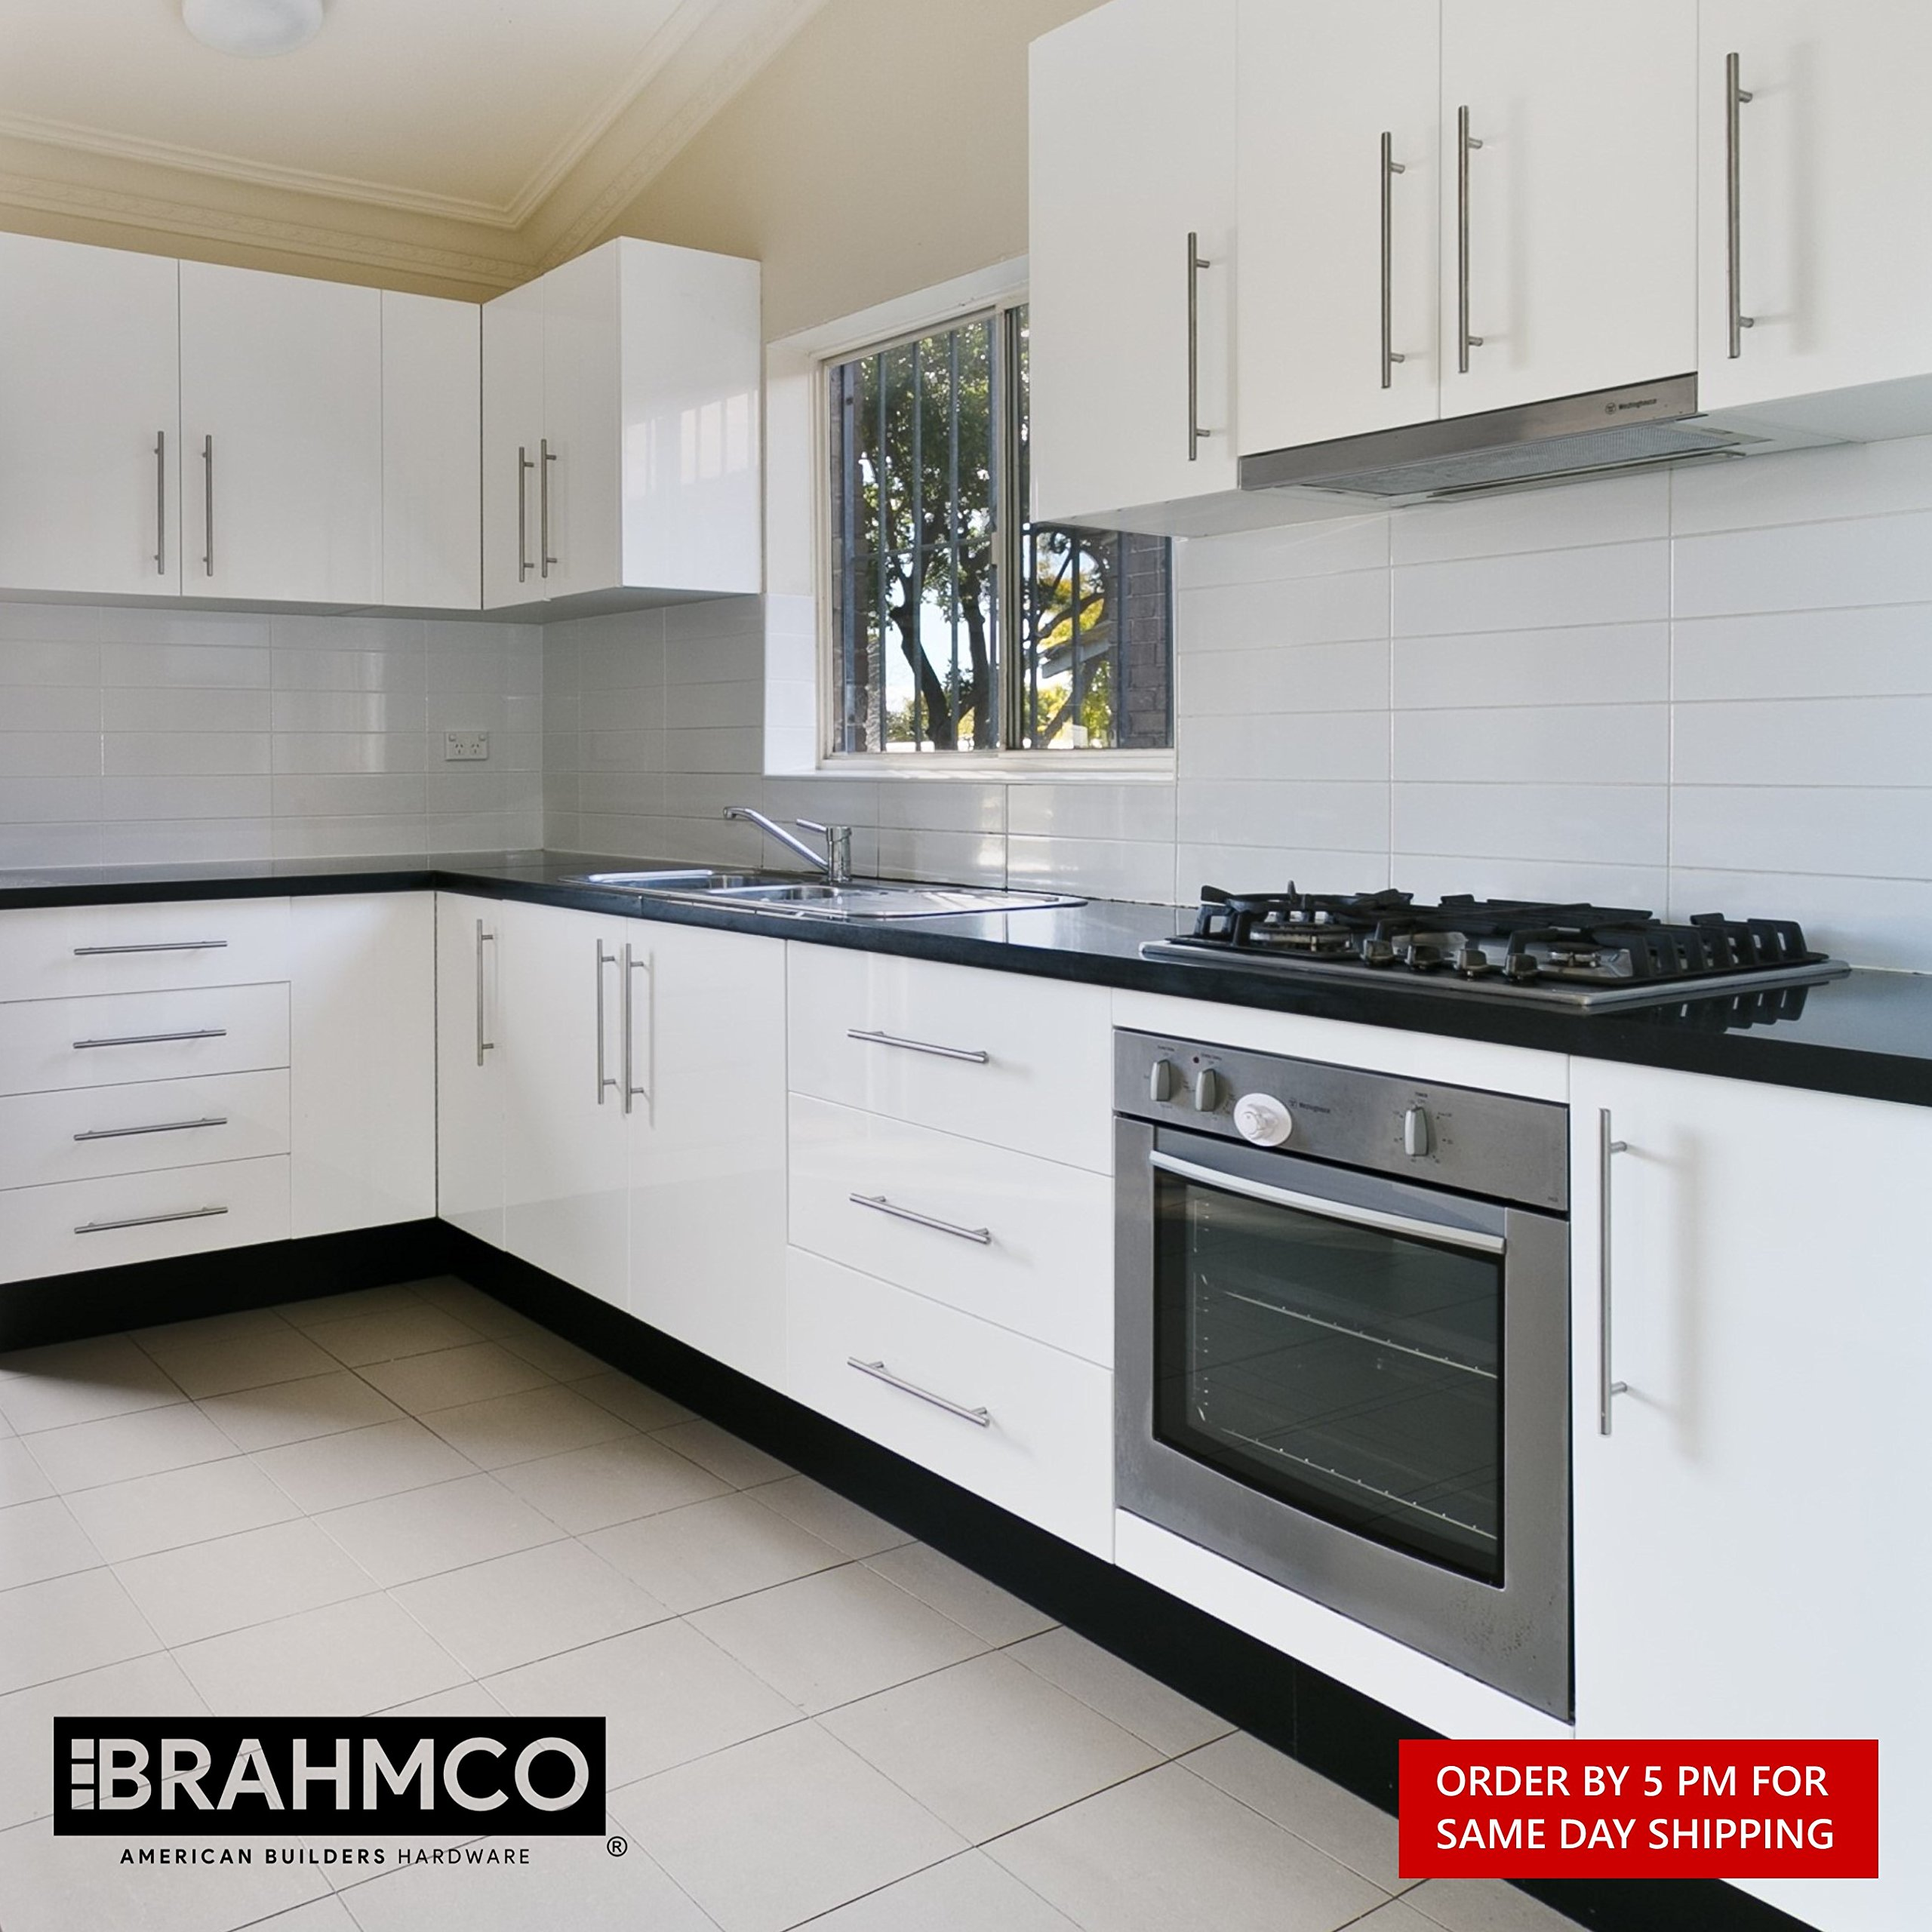 30 Pack | 5'' Stainless Steel T Bar Cabinet Pulls: 3 Inch Hole Spacing | Brahmco 180-5 | Modern Euro Style Brushed Satin Nickel Finish Kitchen Cabinet Handles Hardware/Drawer by Brahmco (Image #9)